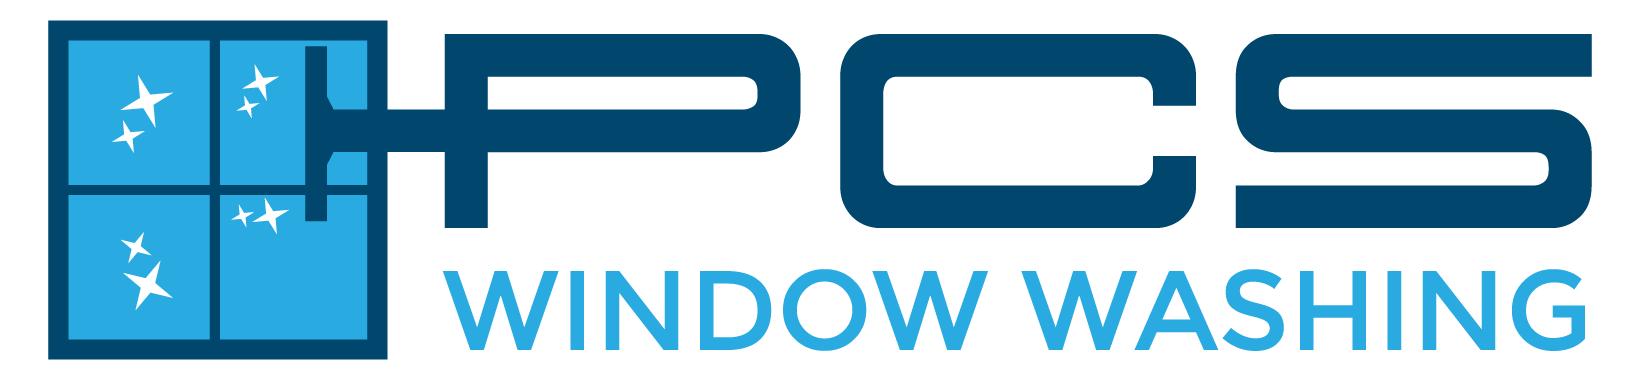 PCS Window Washing